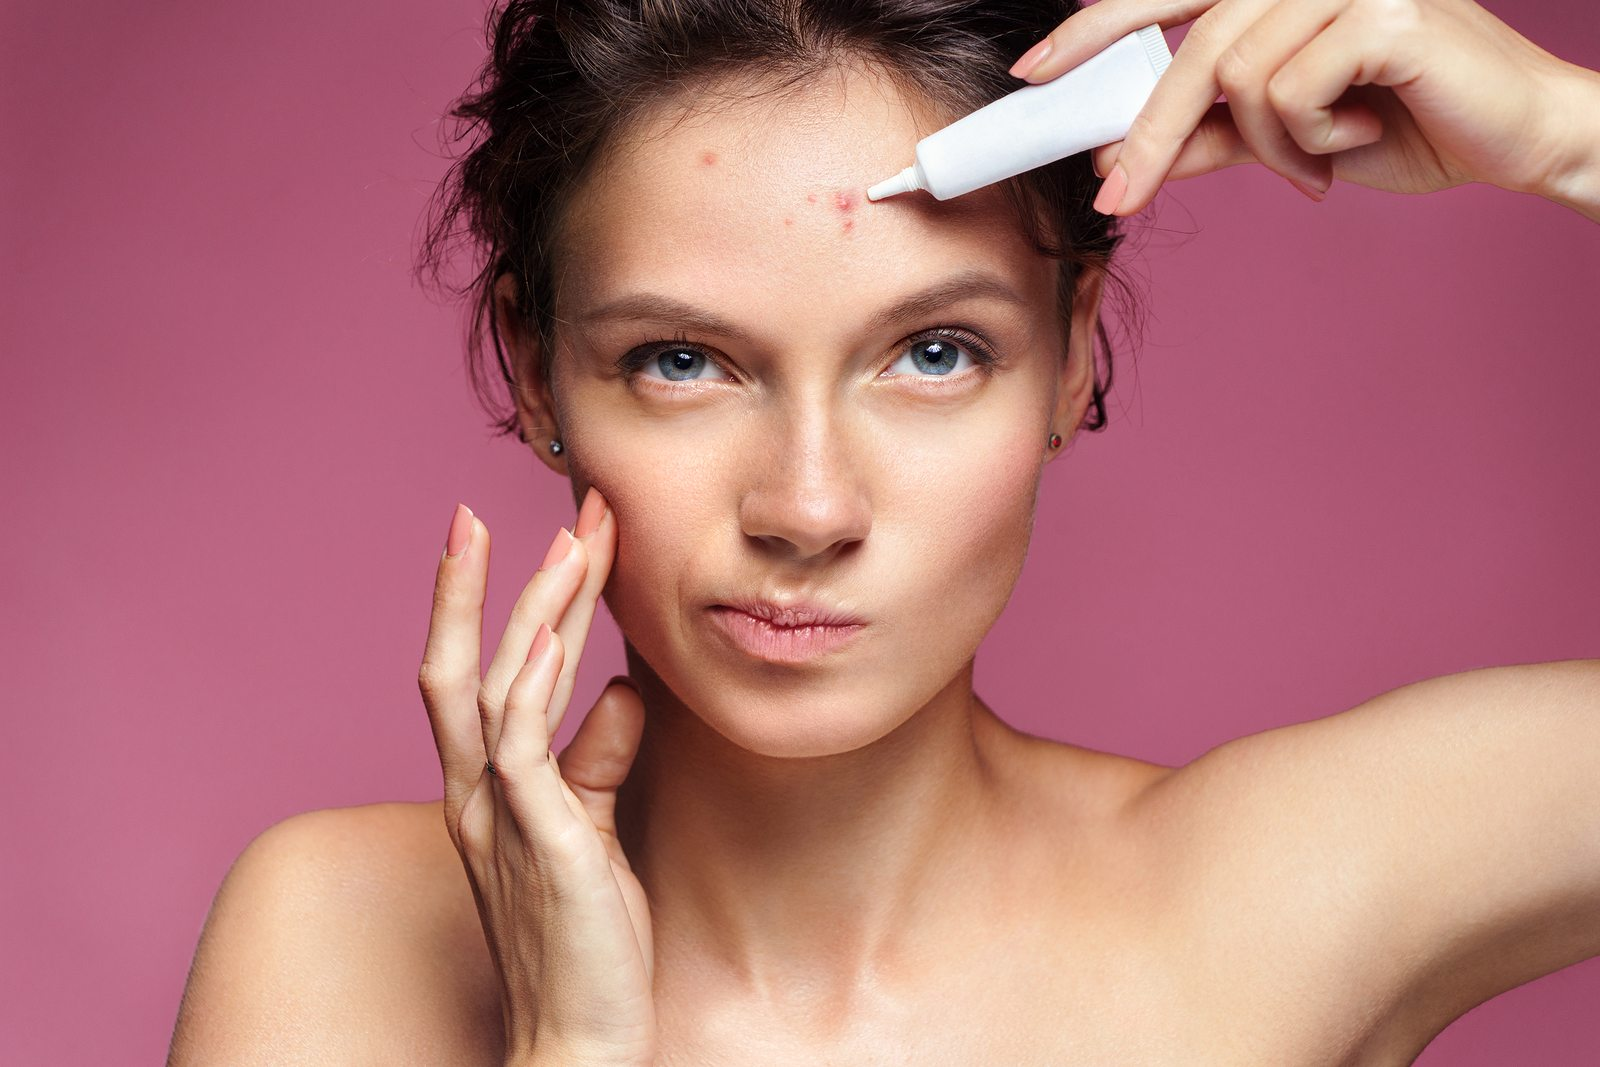 A British study has found that acne leads to an increased risk for depression